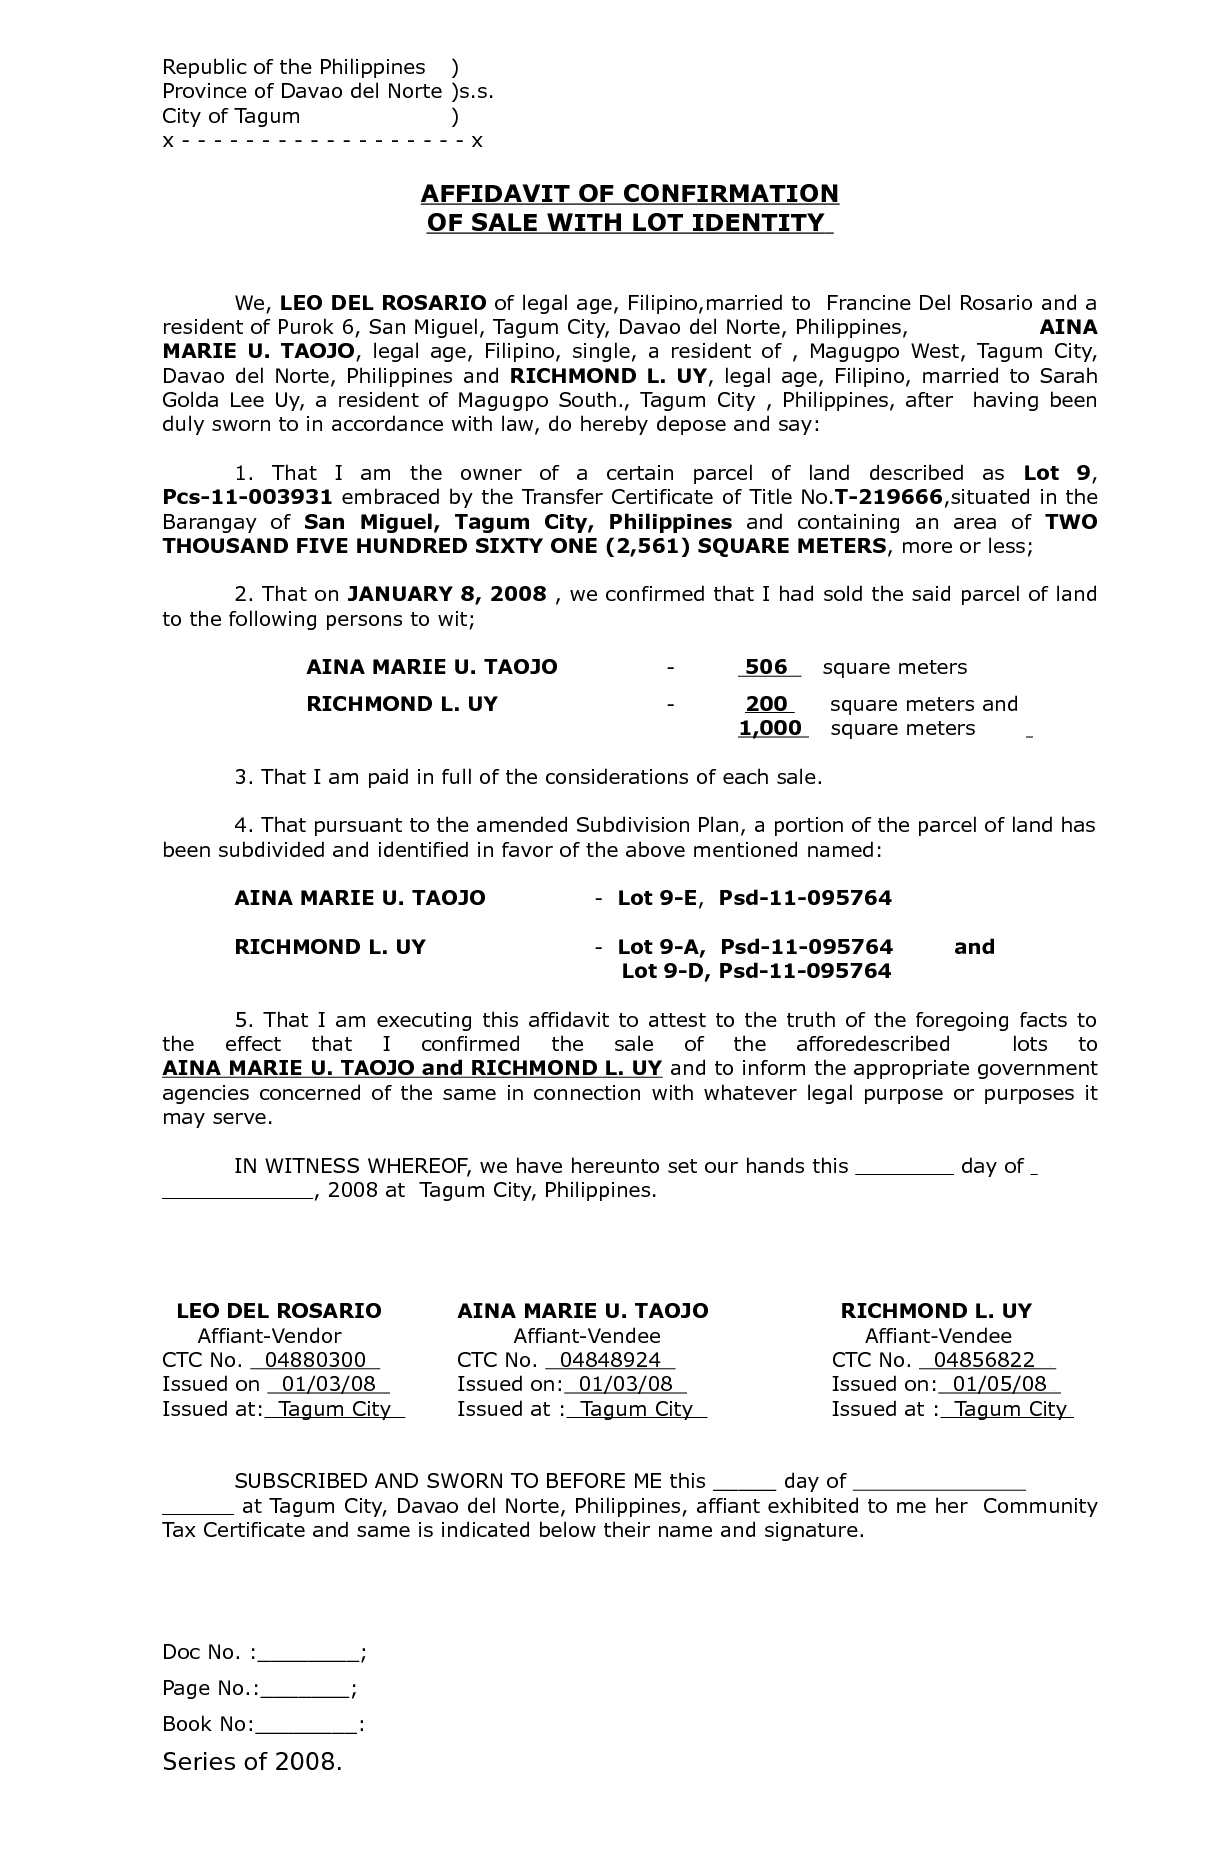 calam233o affidavit of confirmation of sale with lot